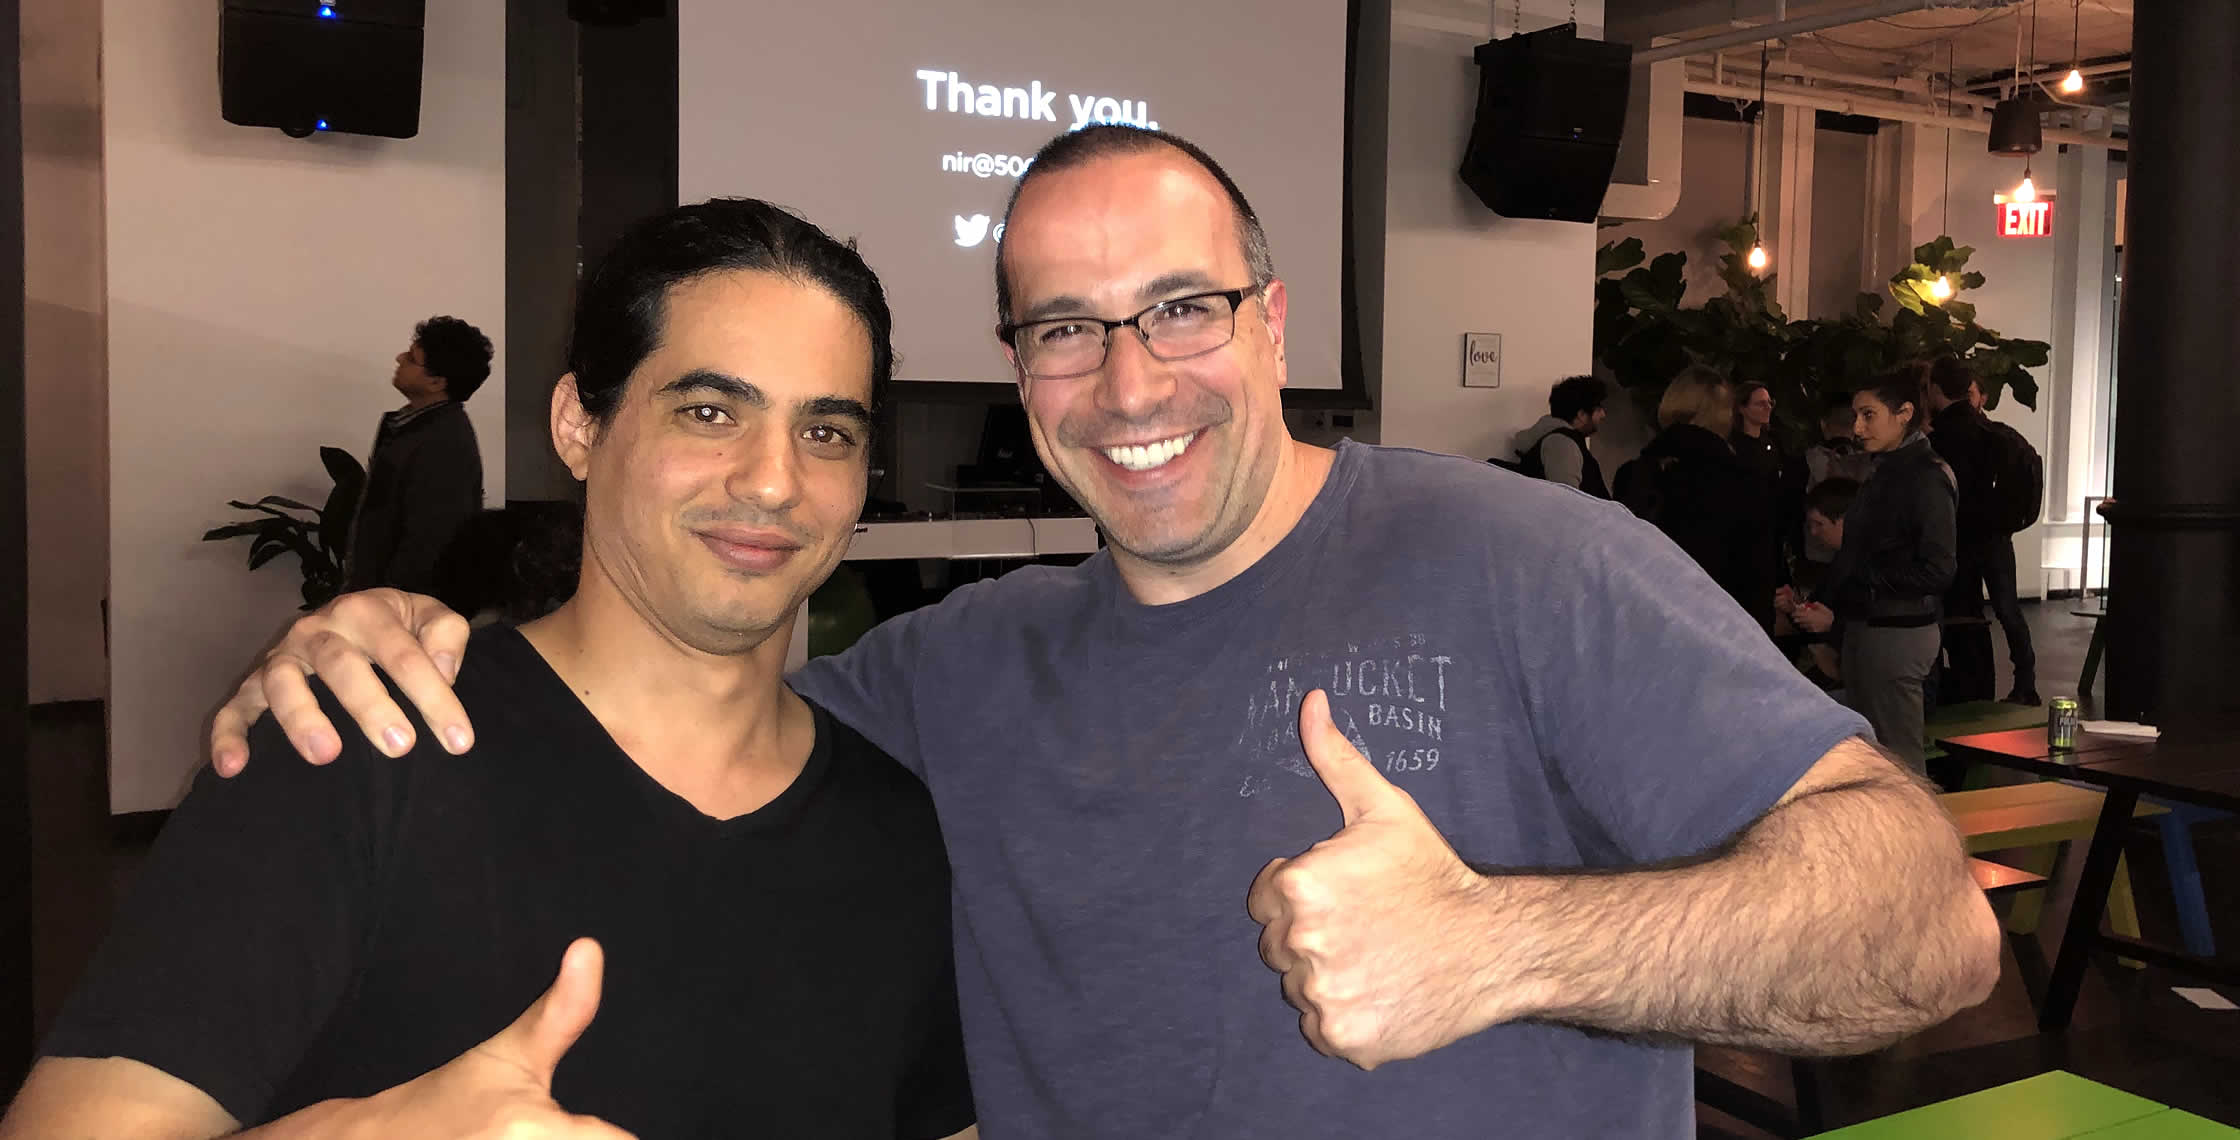 Ben Nadel at the React NYC Meetup (Oct. 2018) with: Nir Kaufman